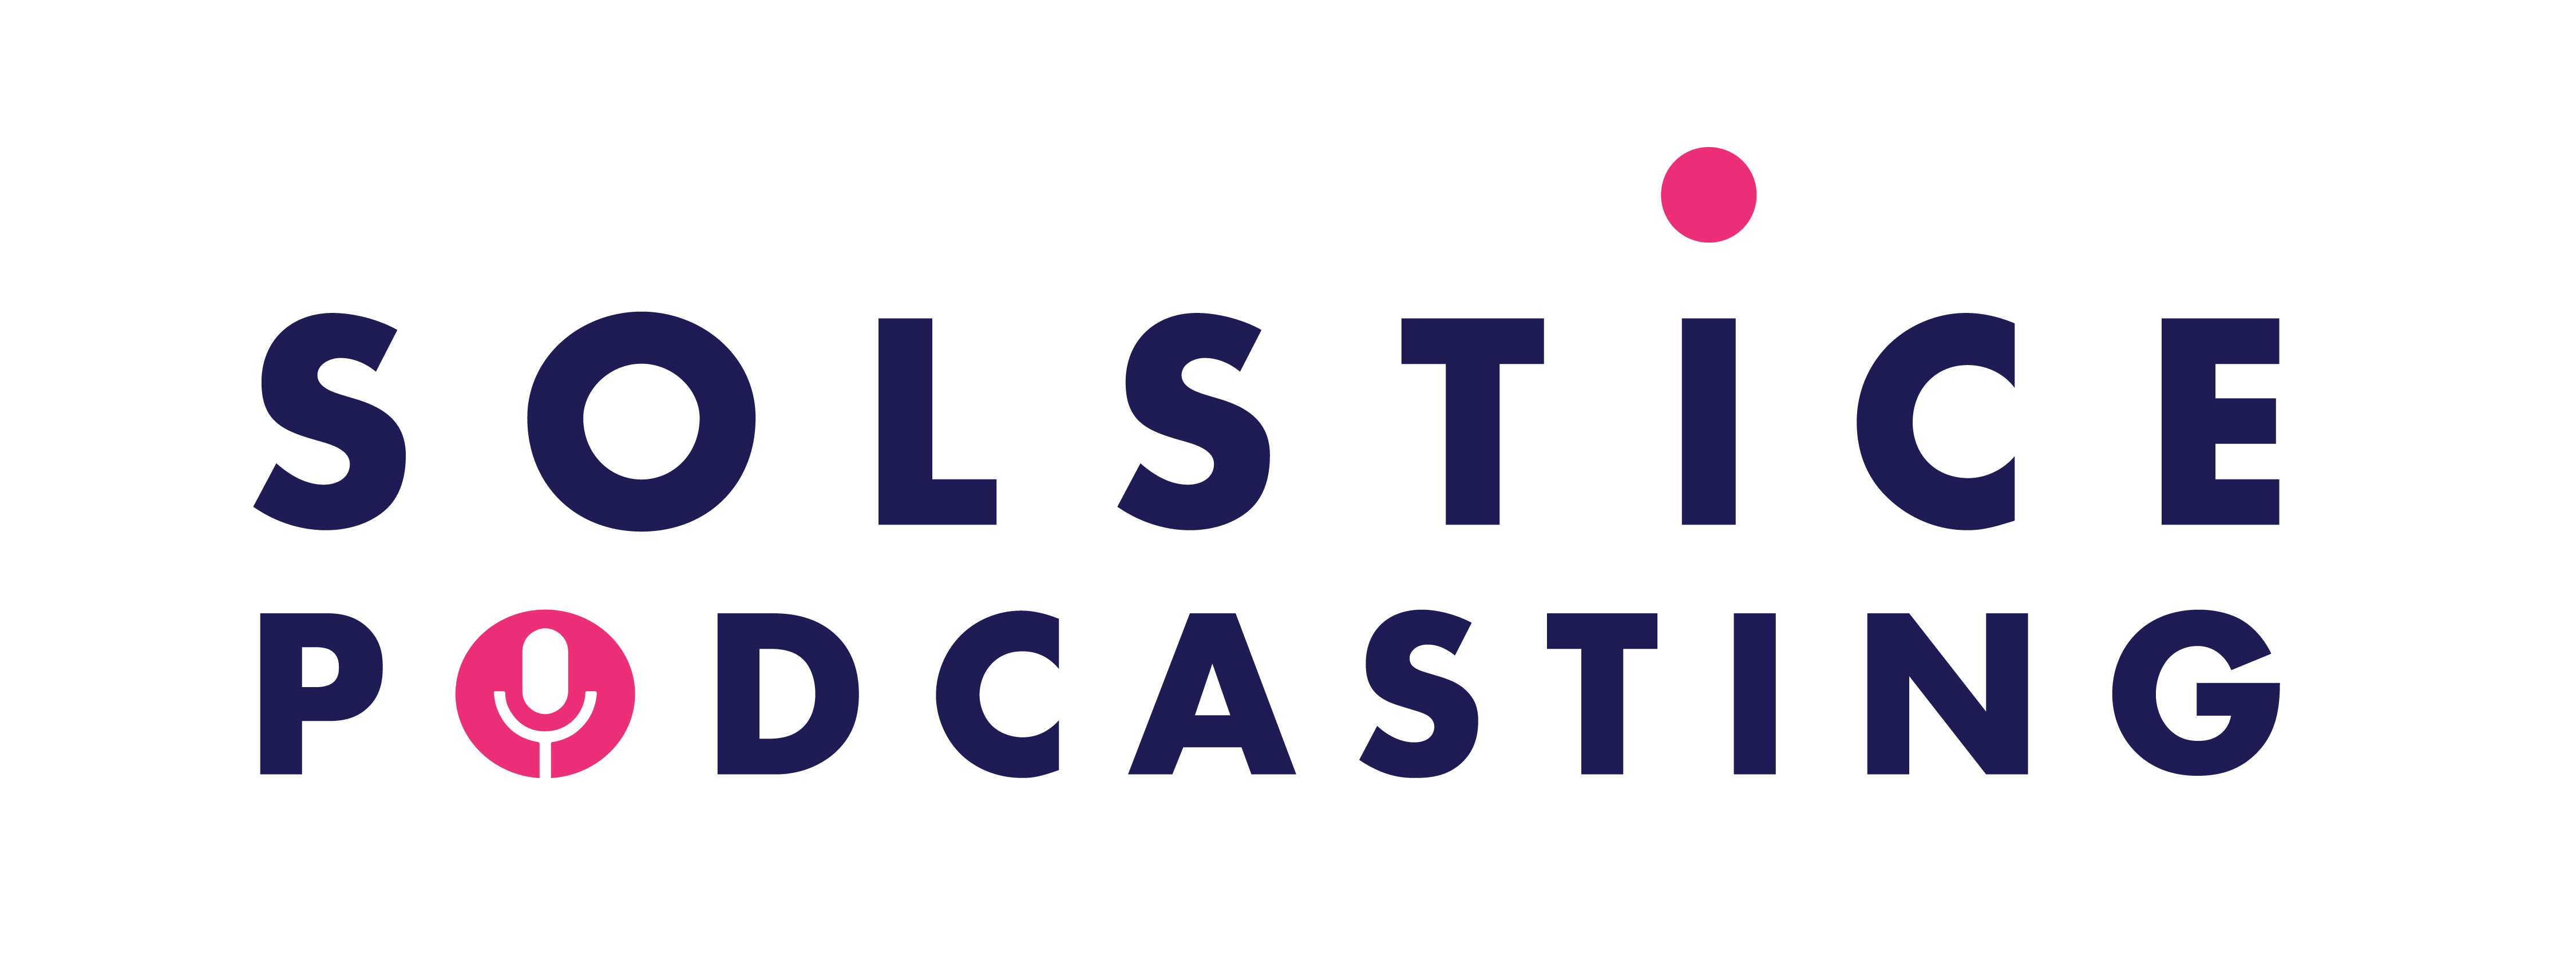 Solstice Podcasting